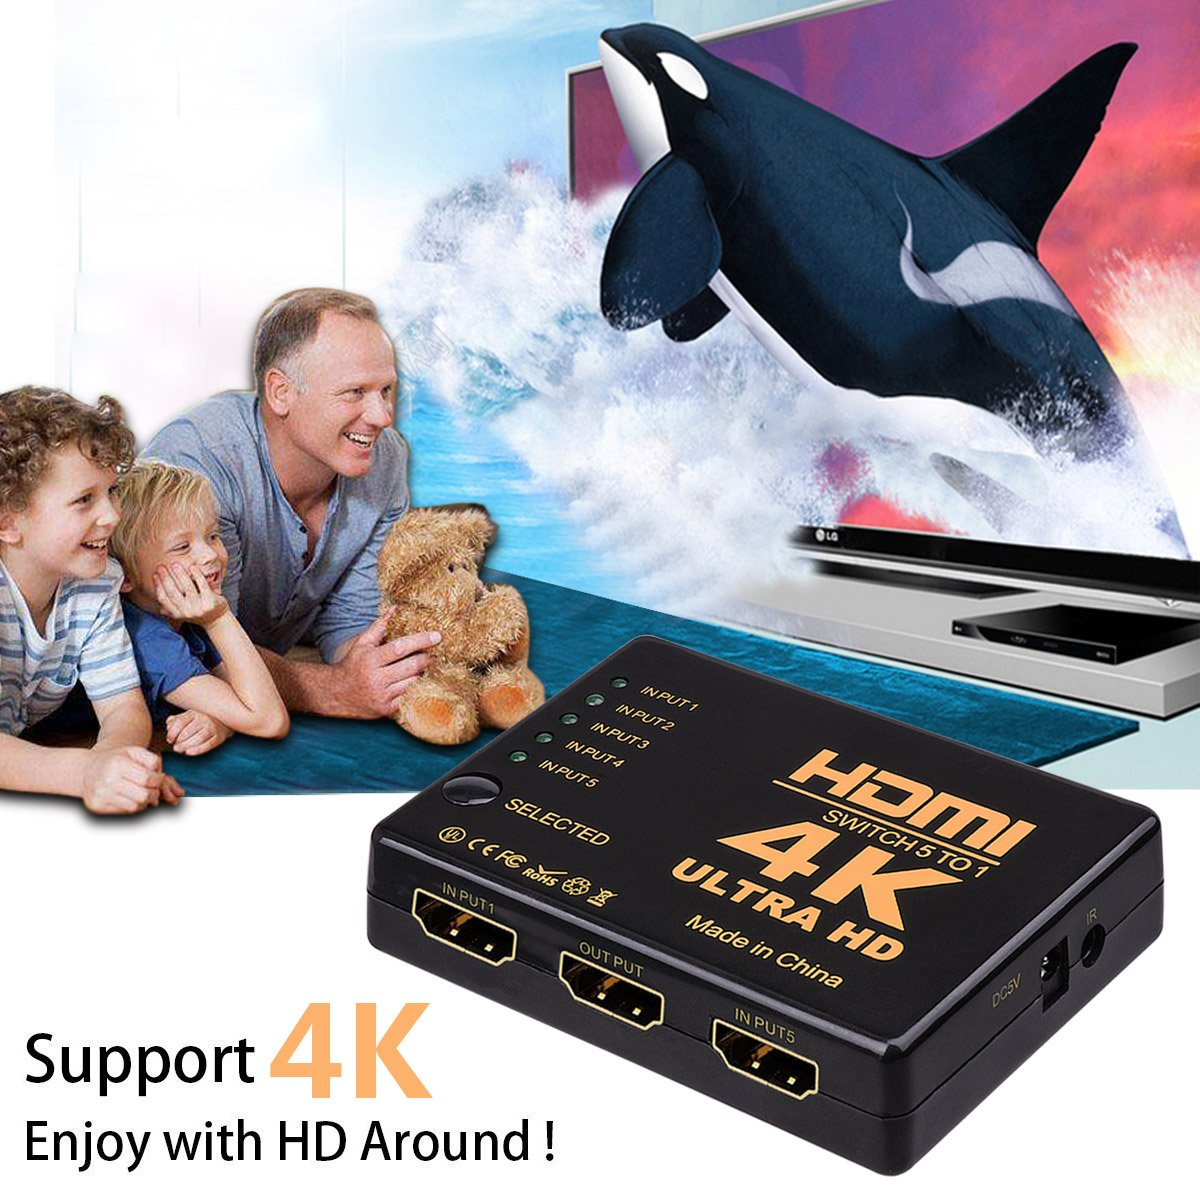 HDMI Switch Splitter,NXLFH Intelligent 5-Port HDMI Switcher, Supports 4K, Full HD1080p, 3D with IR Remote 1080P HD Audio for Nintendo Switch, Xbox One, Roku 3, Apple TV HD TV XBox PS3 PS4 5 in 1 out by NXLFH (Image #5)